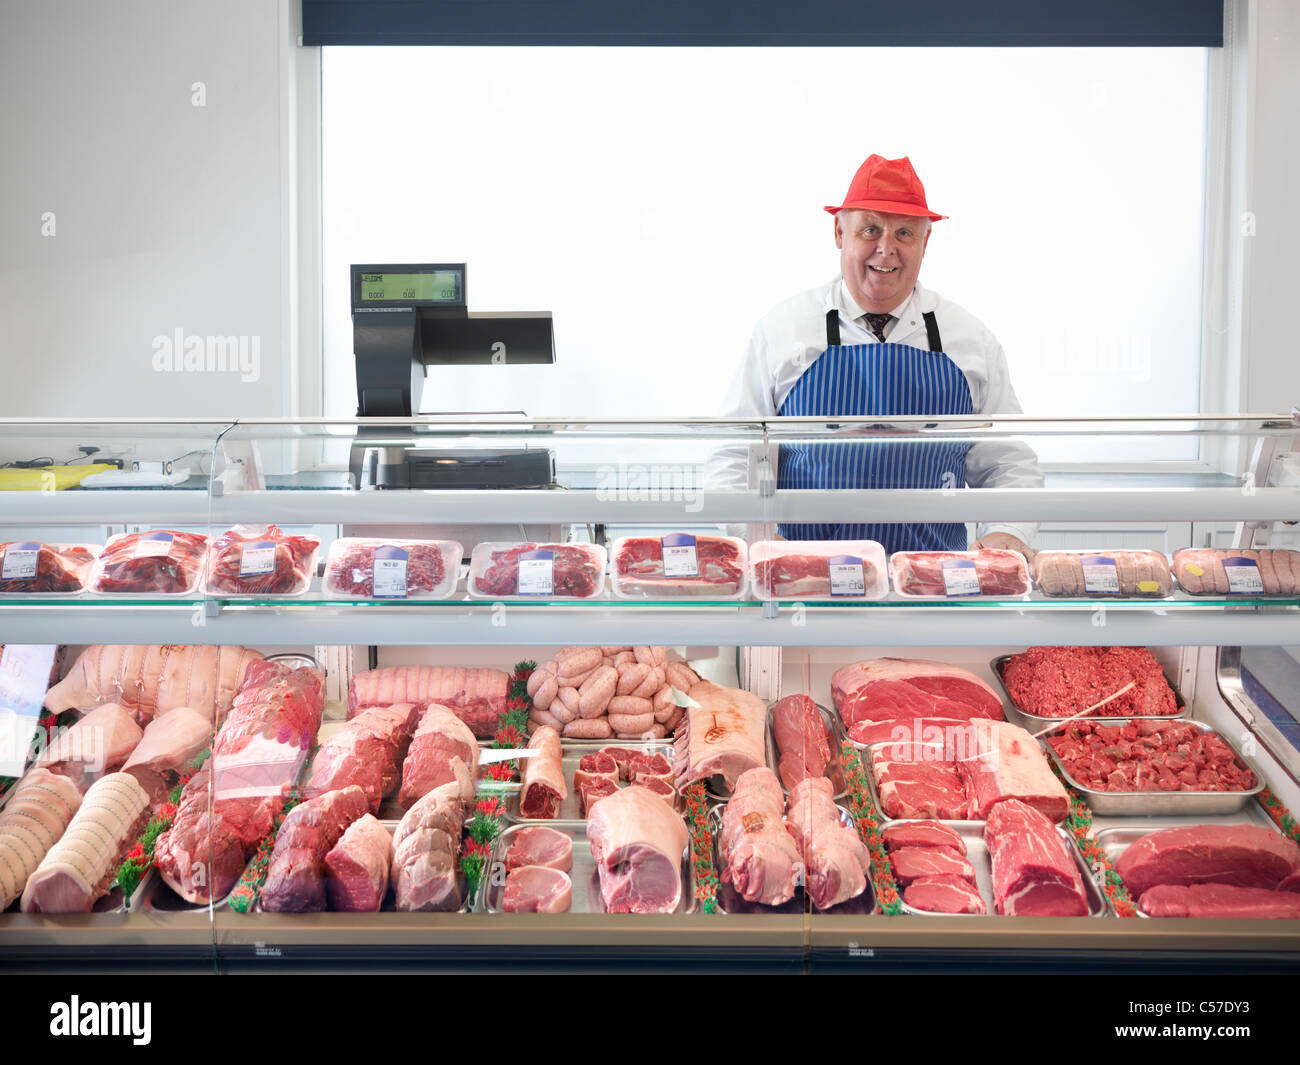 Butcher Standing Behind Meat Counter Stock Photo 37658631